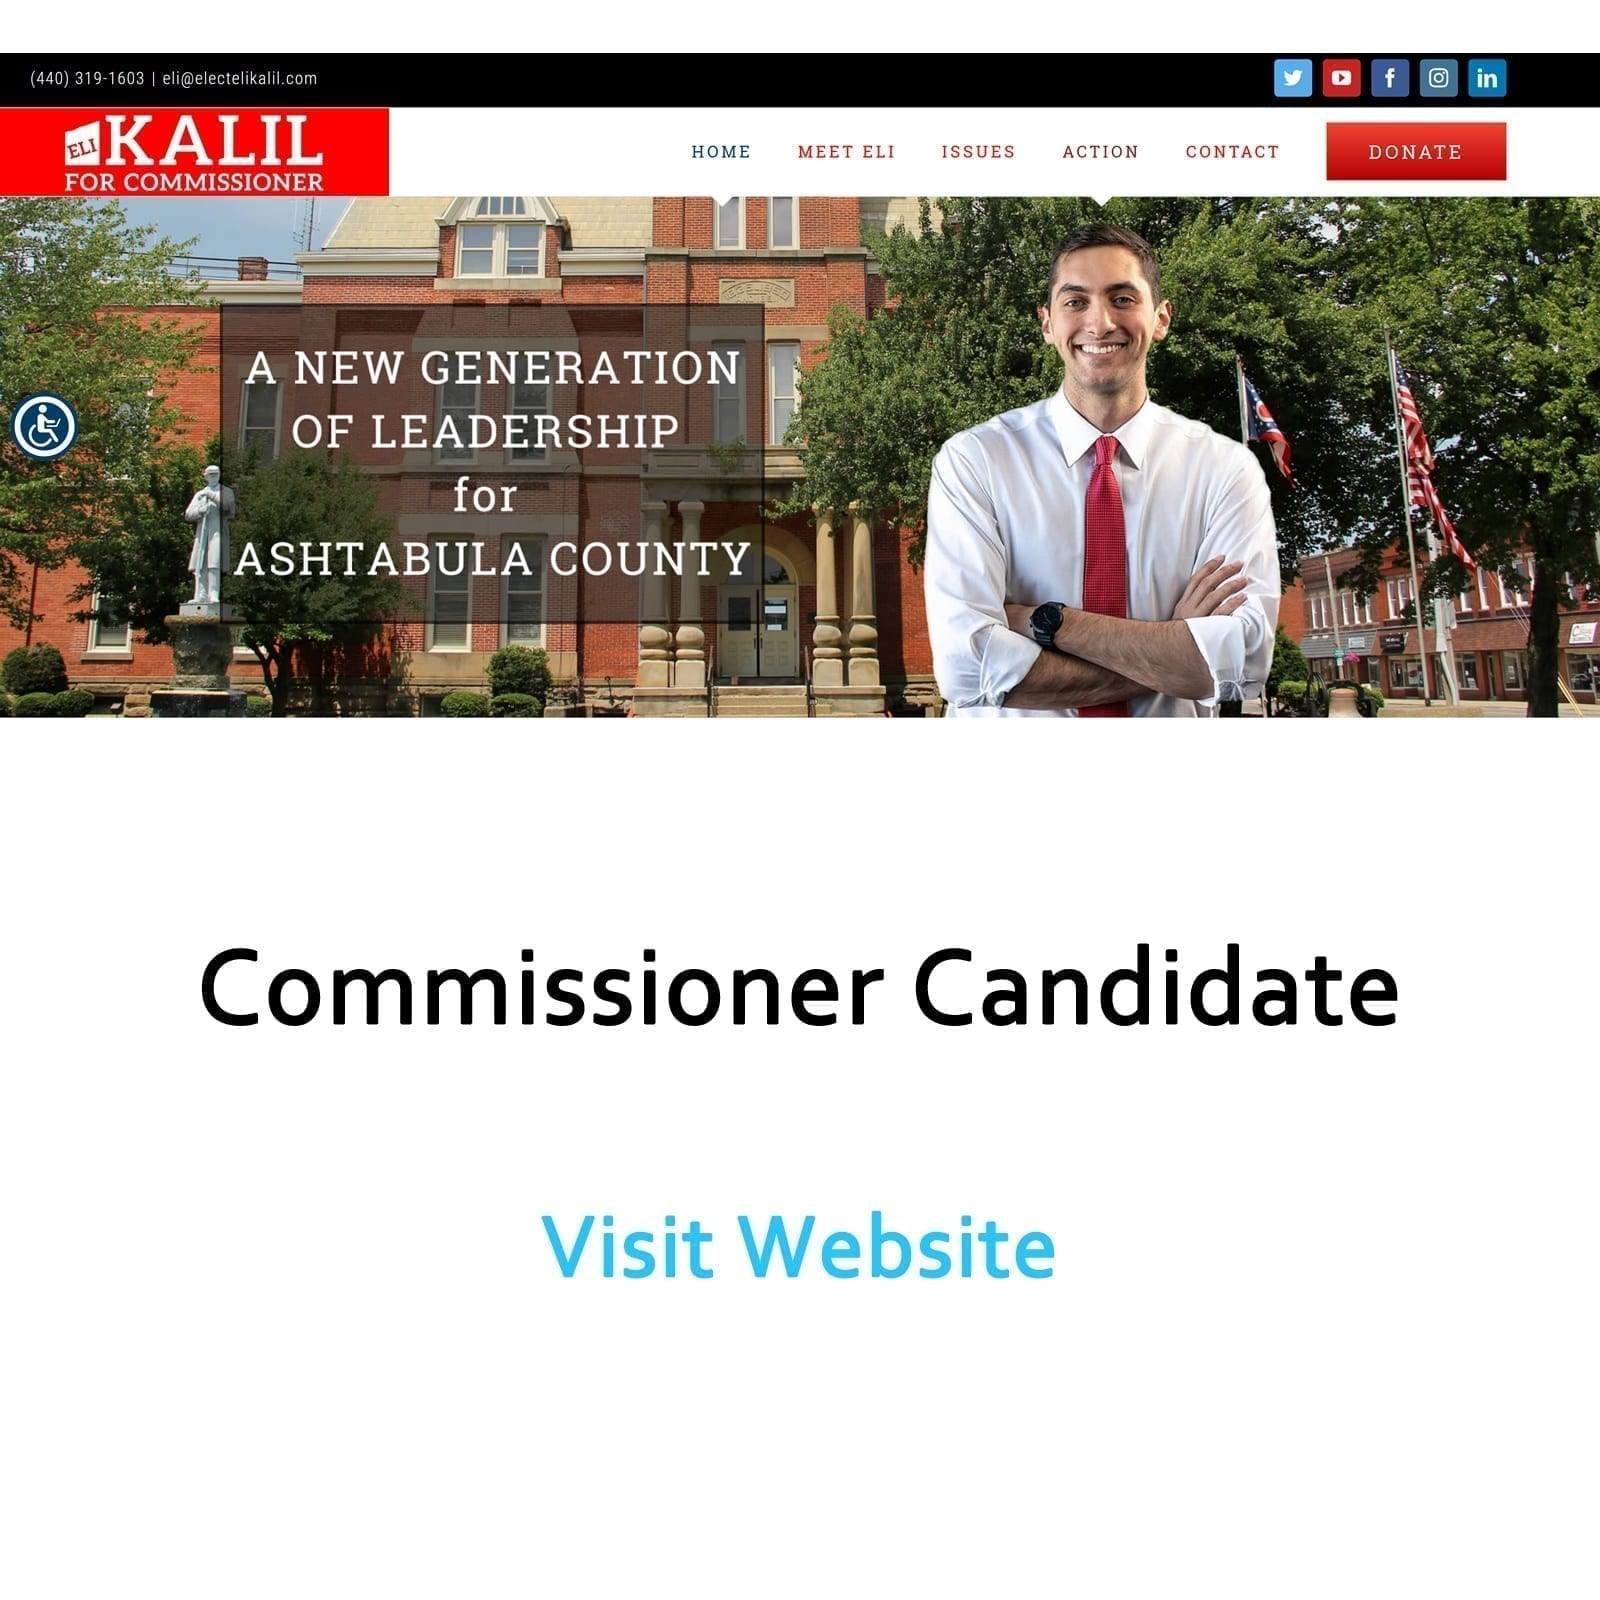 Image of Eli Kalil website